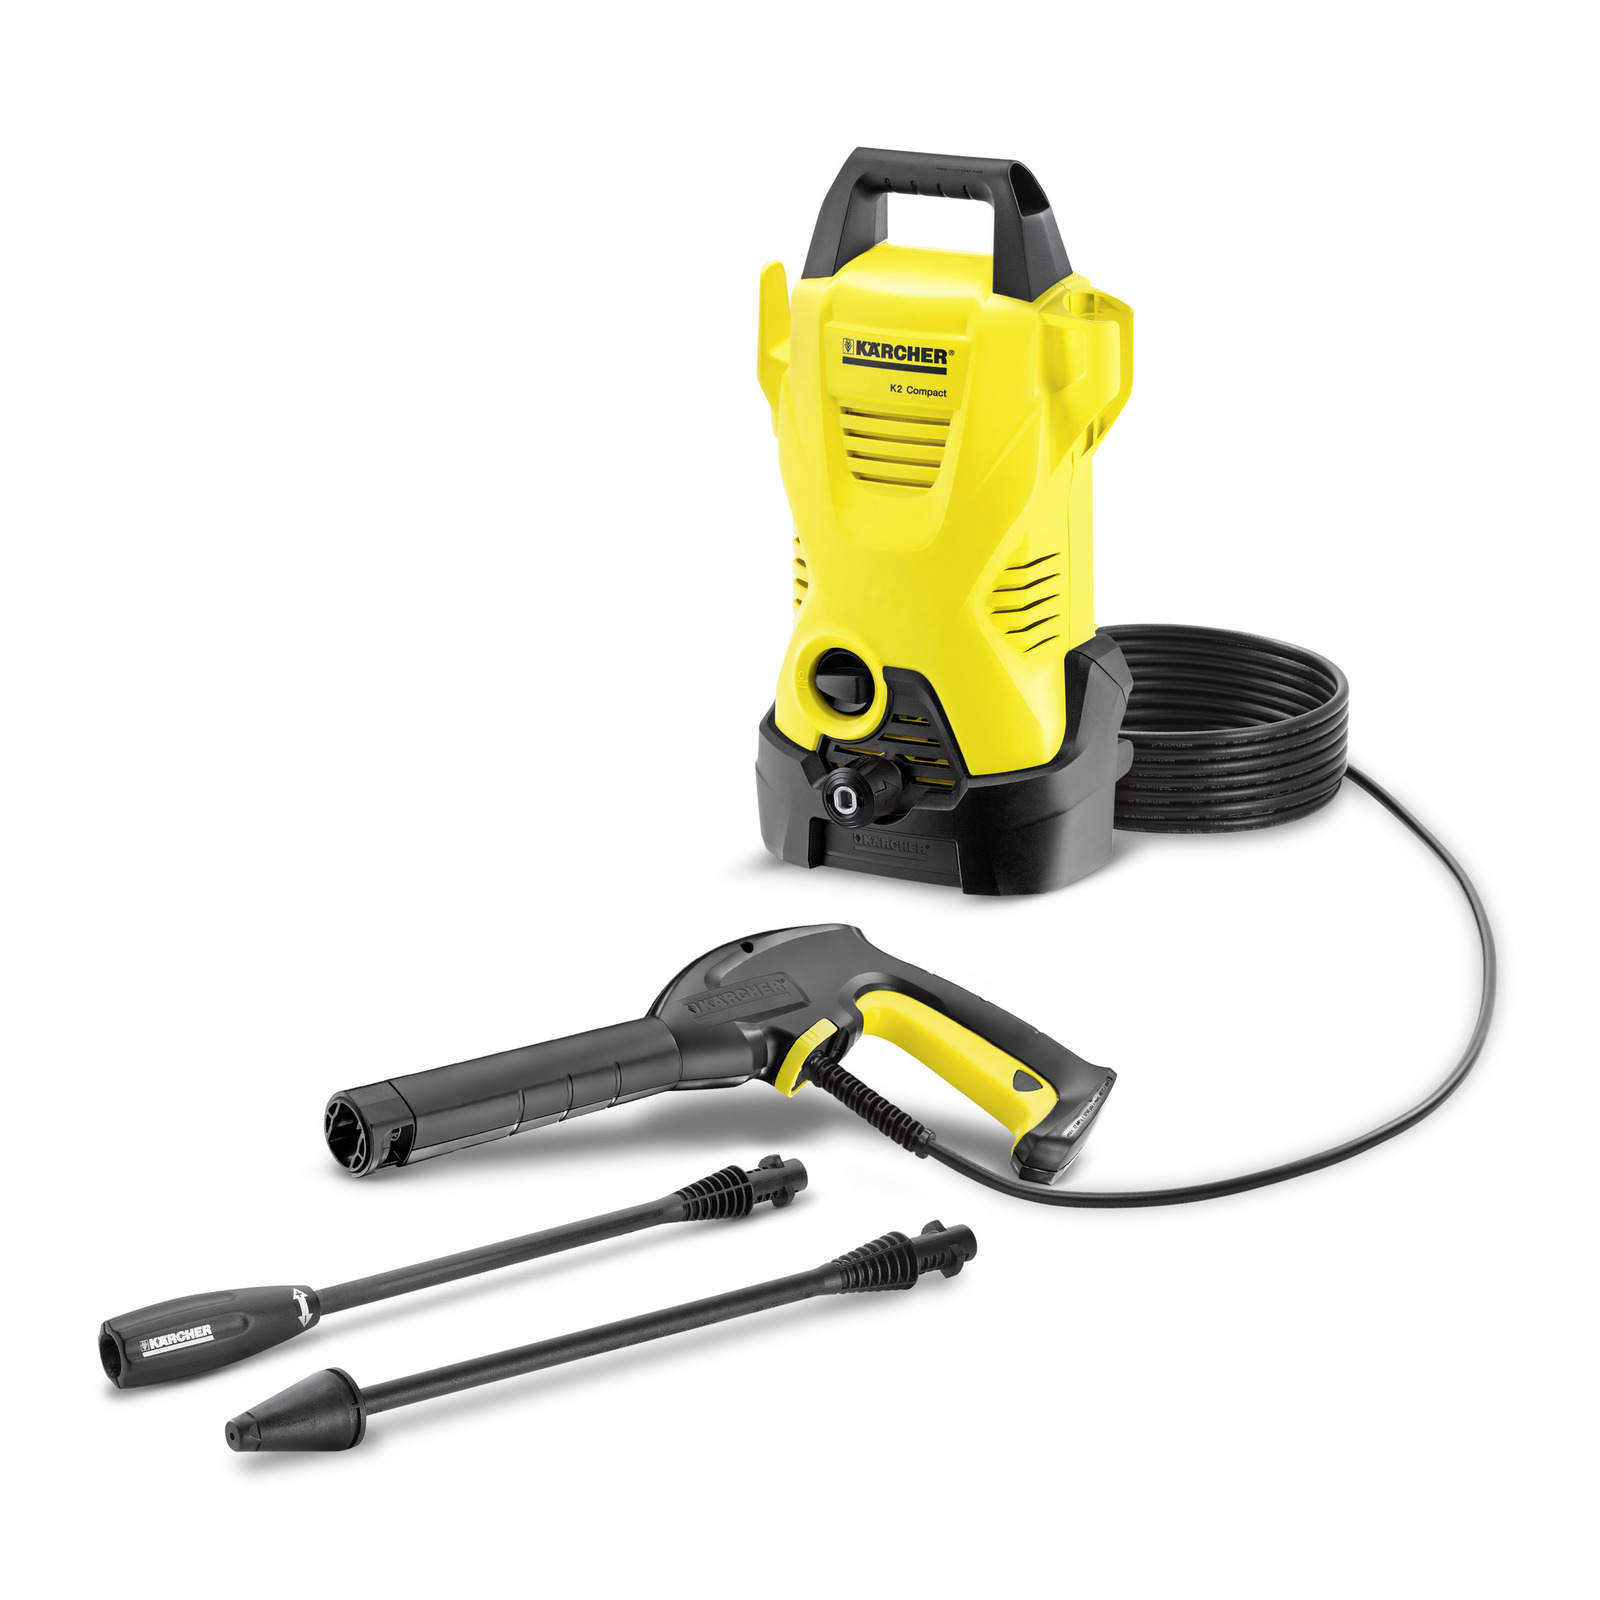 K2 Compact Electric Pressure Washer 1600 Psi 1 602 114 0